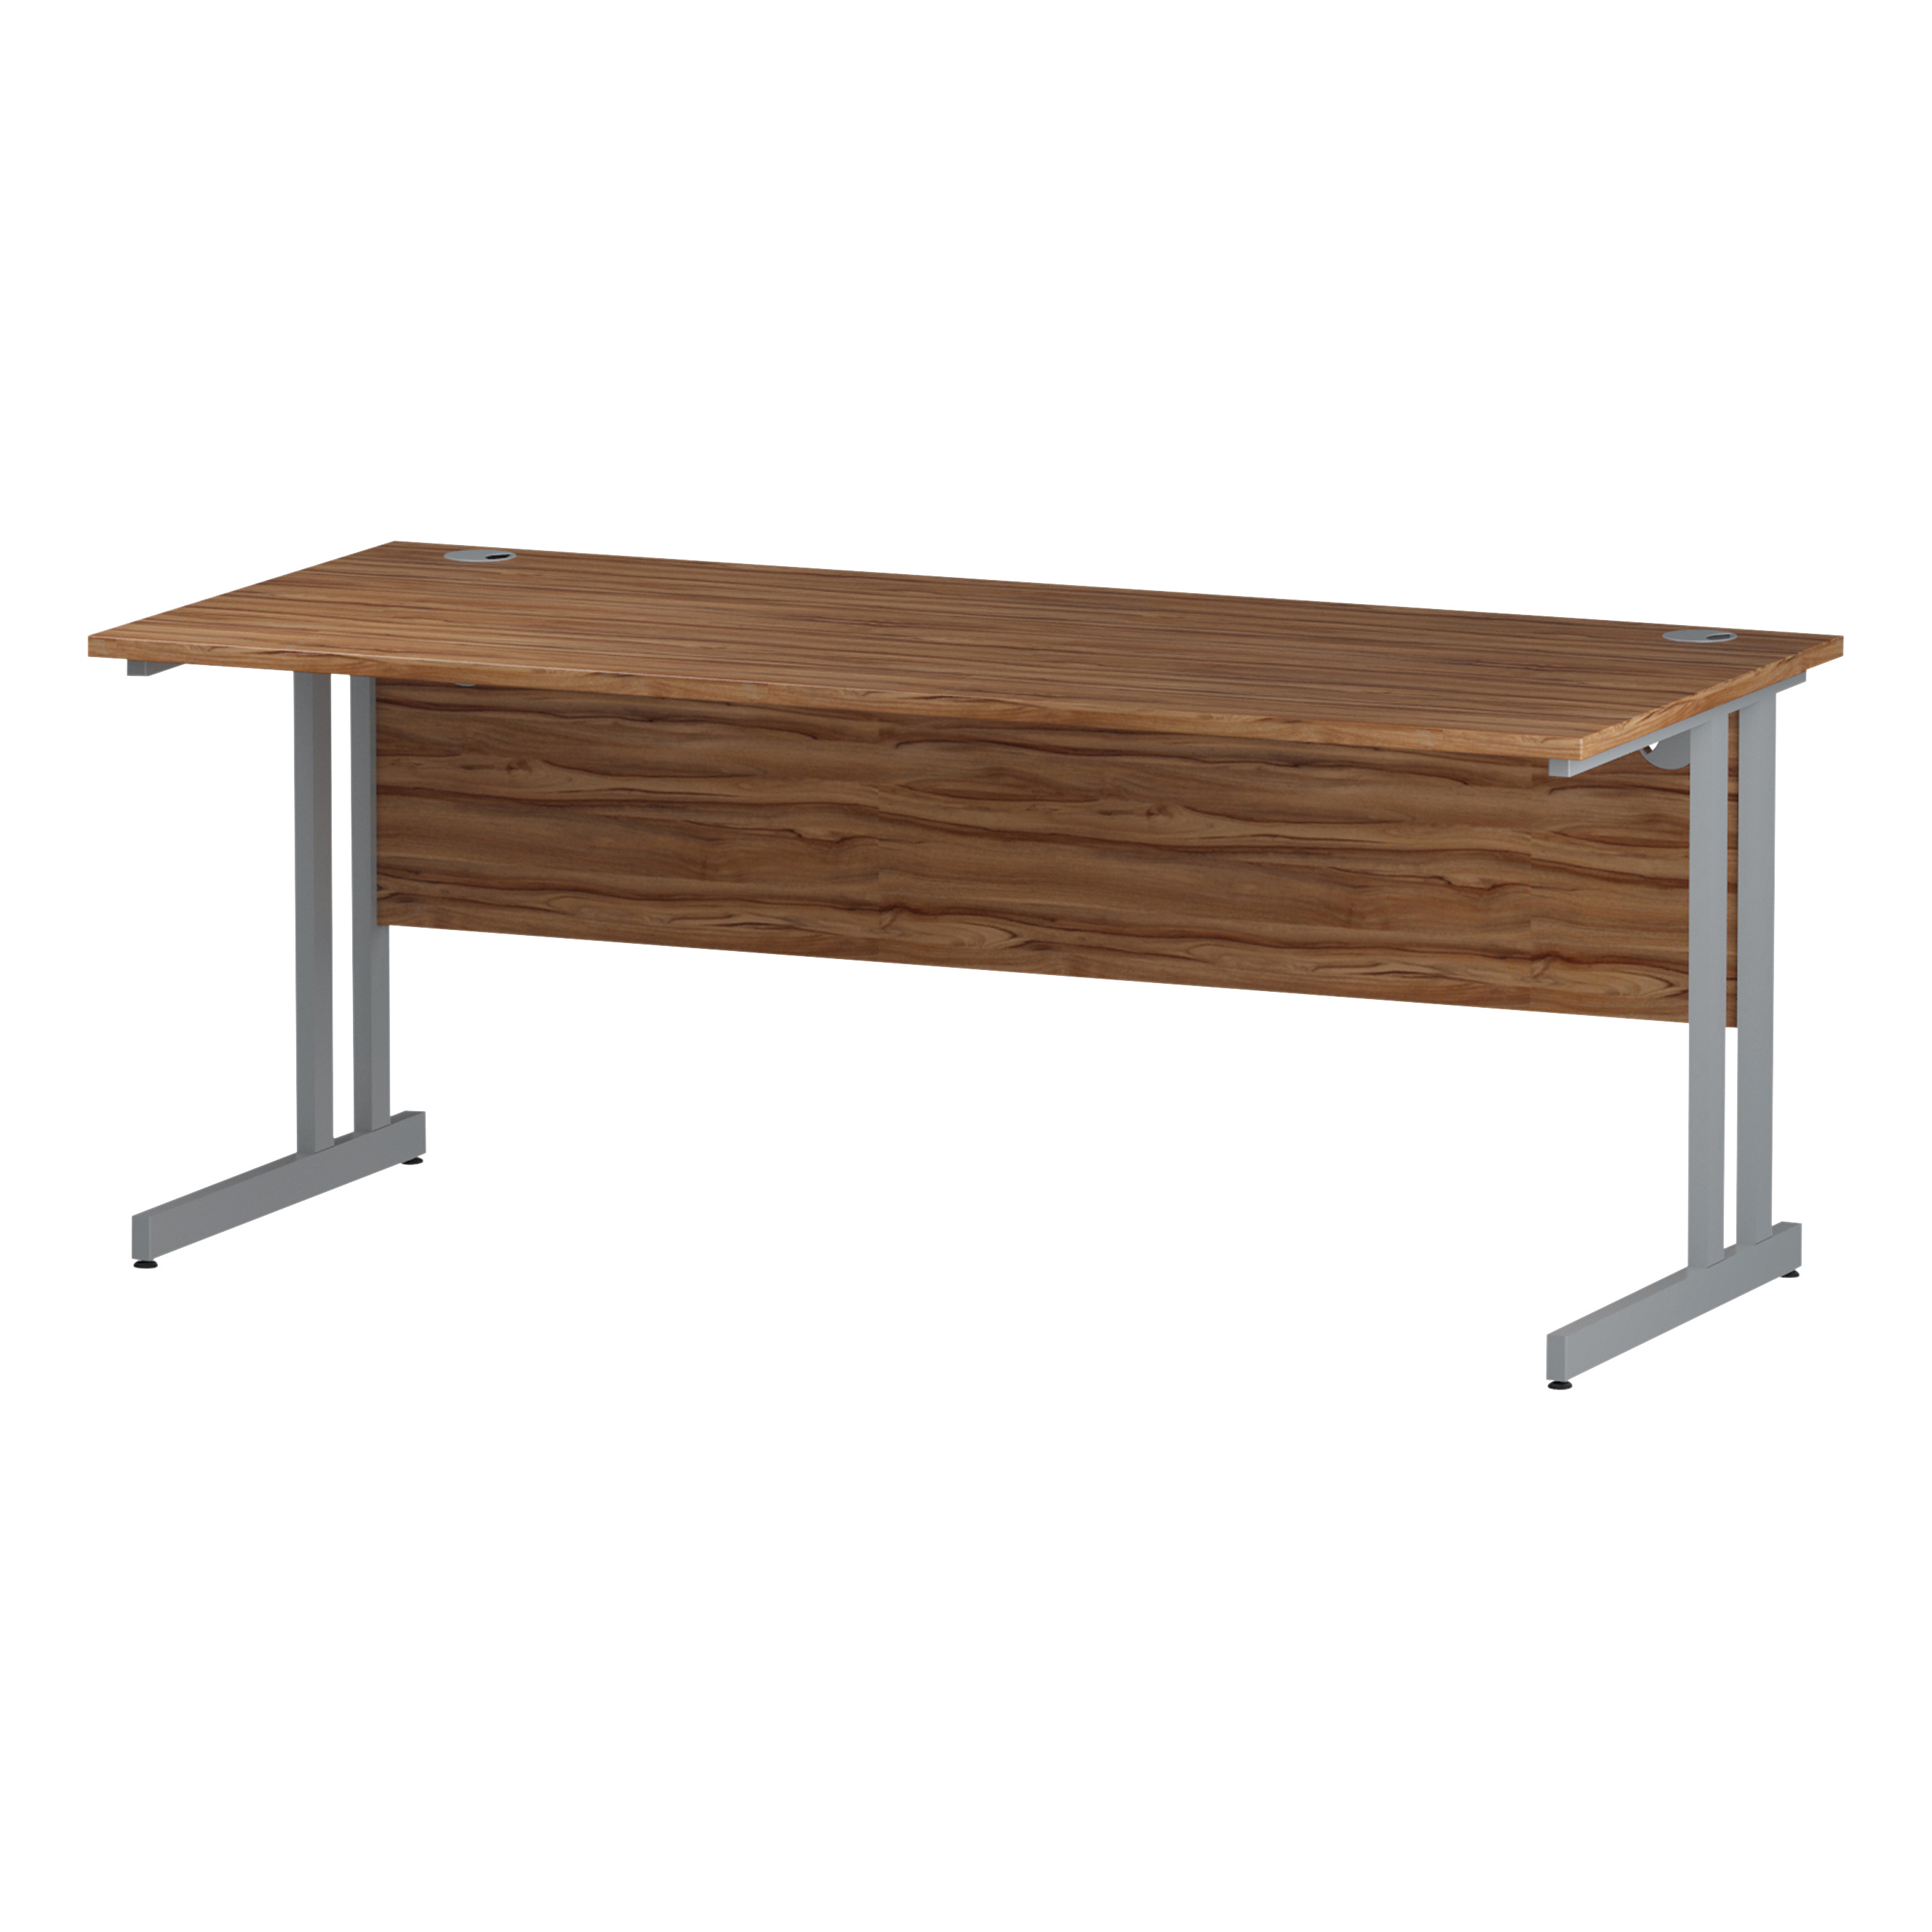 Trexus Rectangular Desk Silver Cantilever Leg 1800x800mm Walnut Ref I001903